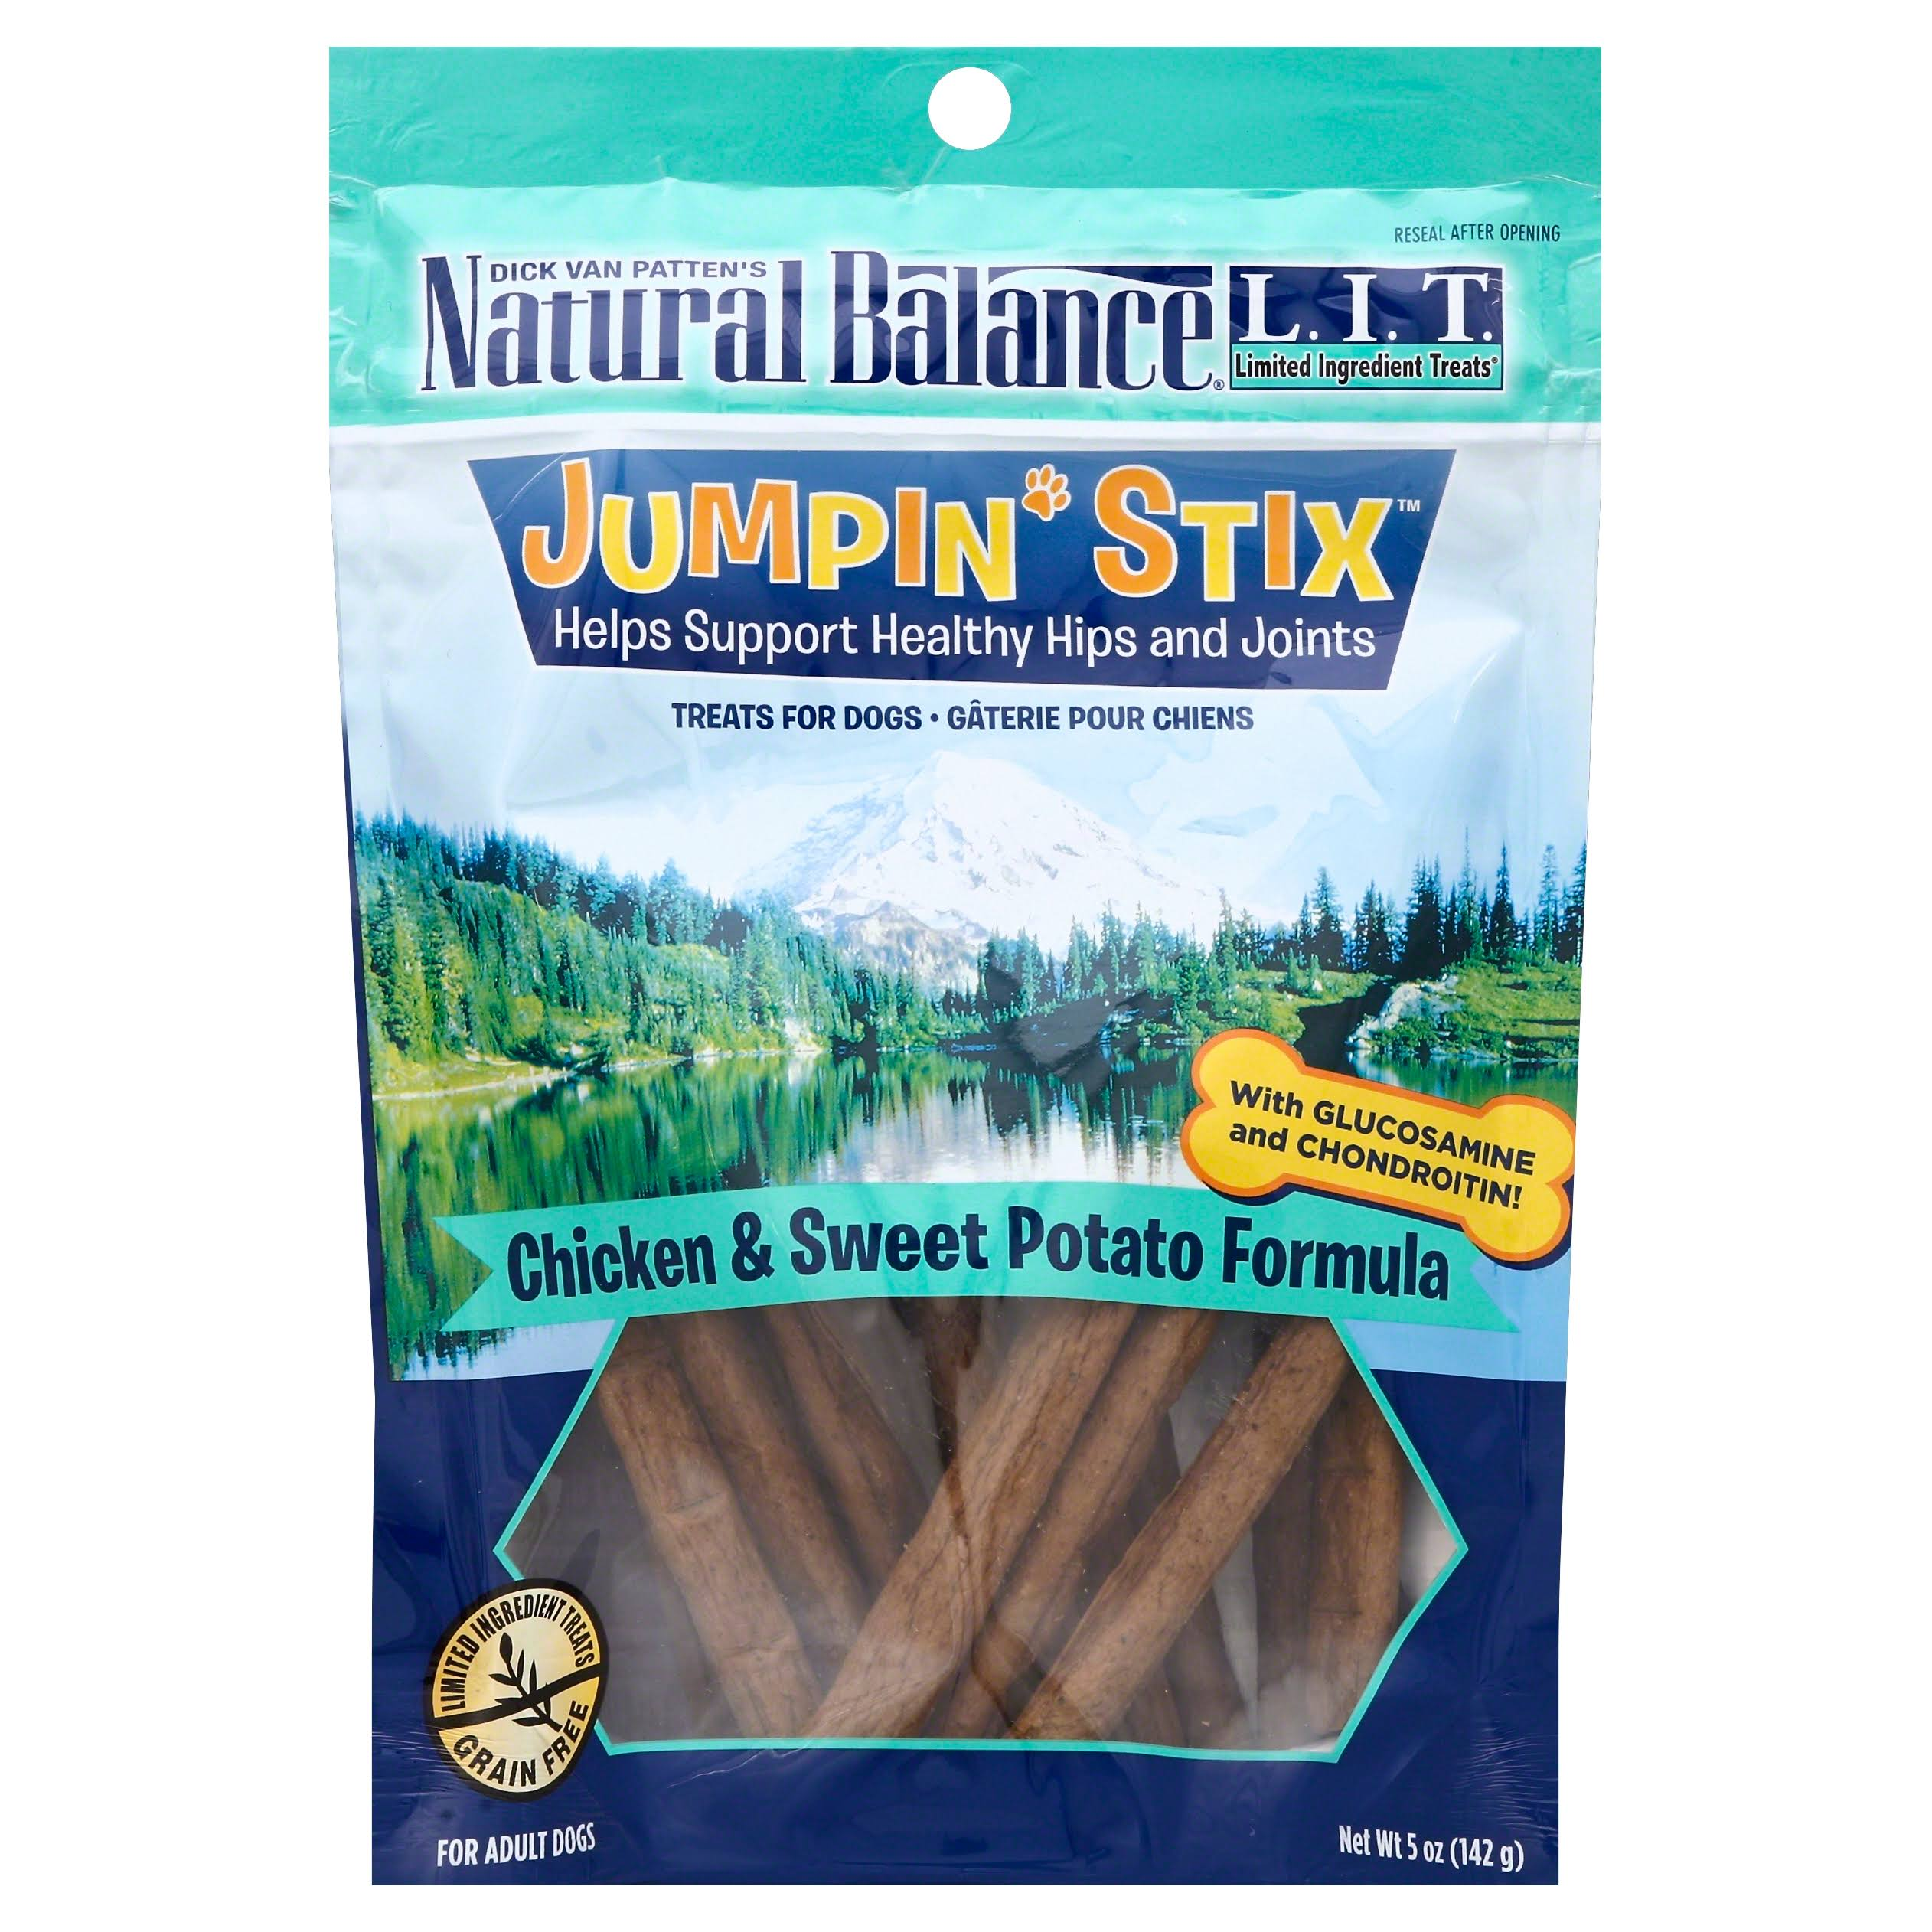 Natural Balance Limited Ingredient Jumpin' Stix Dog Treat - Chicken and Sweet Potato Formula, 12 Pack